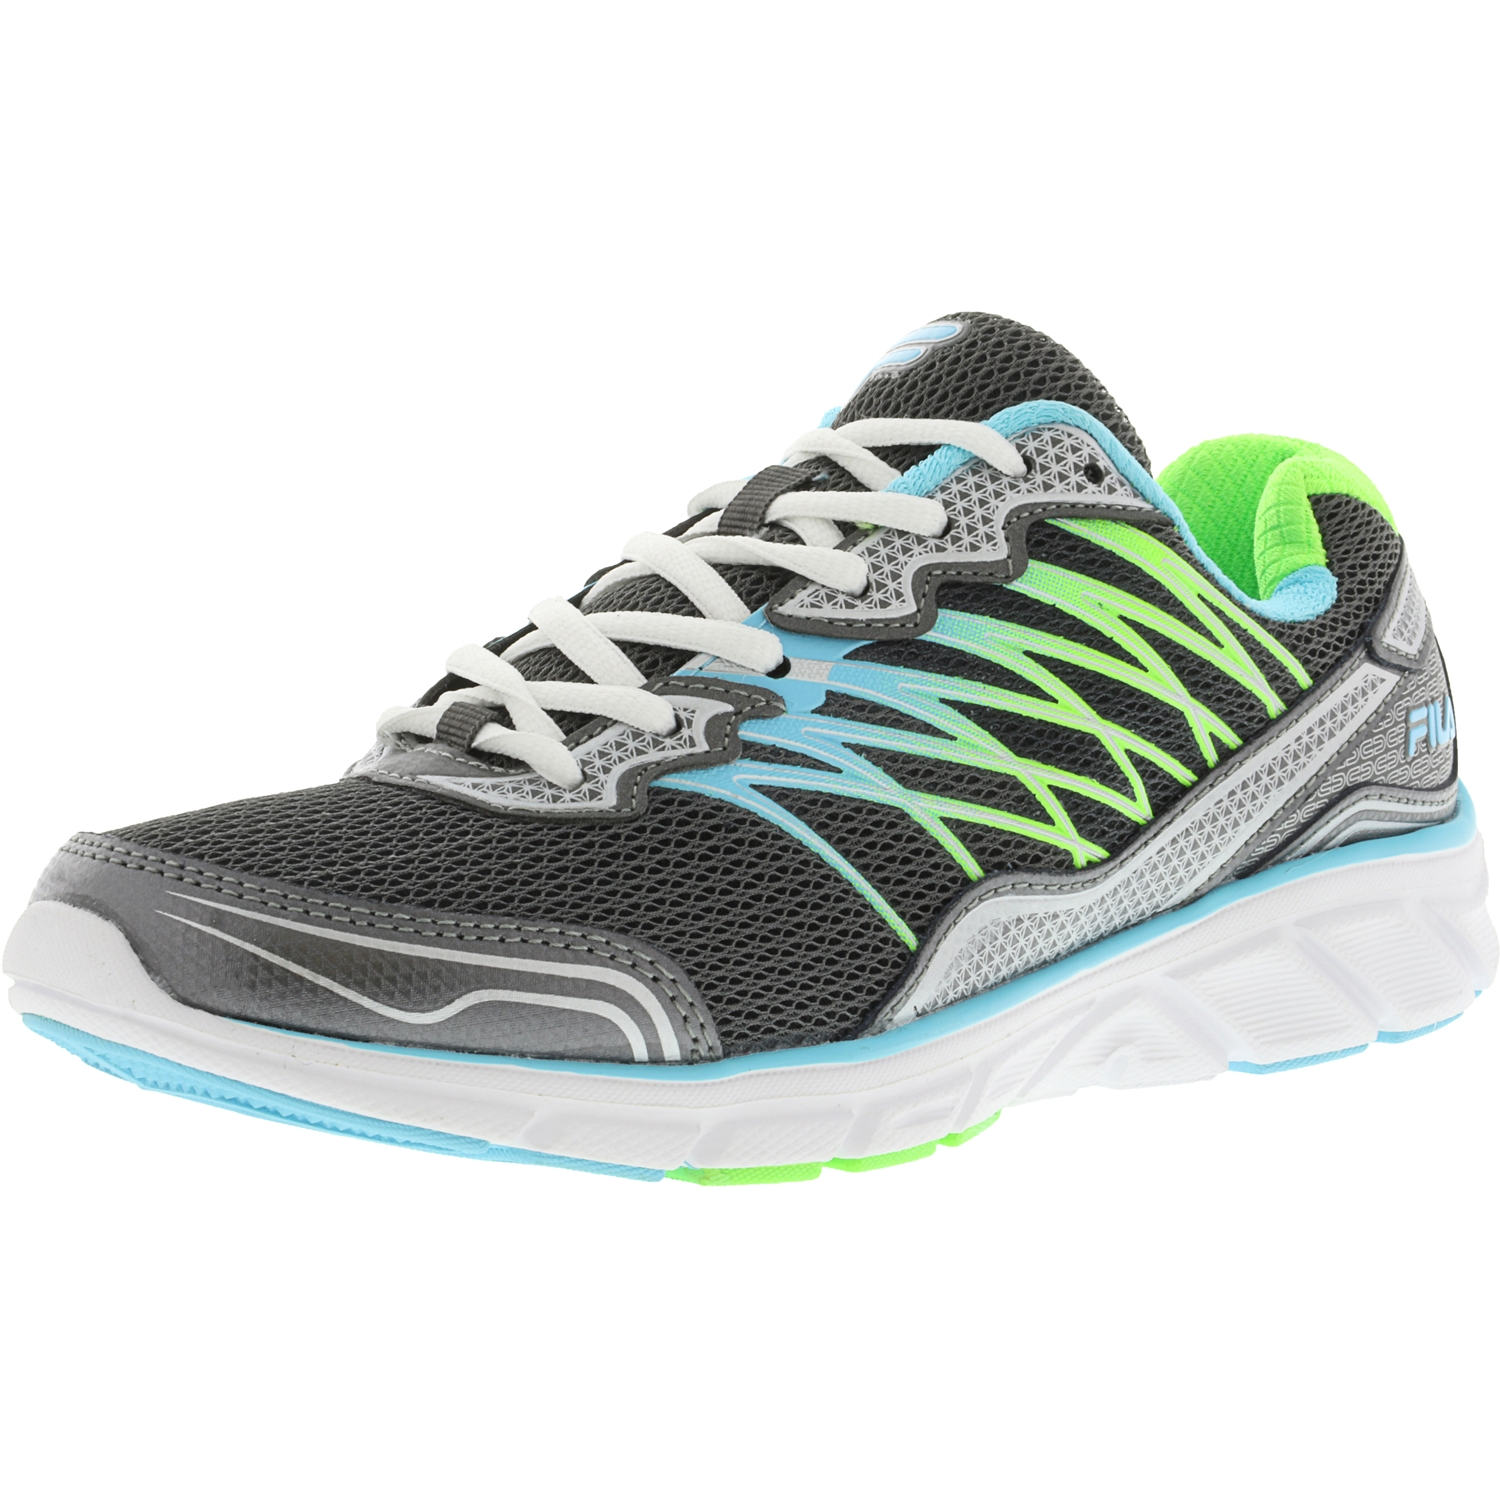 Fila Women's Countdown 2 Dark Silver   Bluefish Green Gecko Ankle-High Running Shoe 9M by Fila